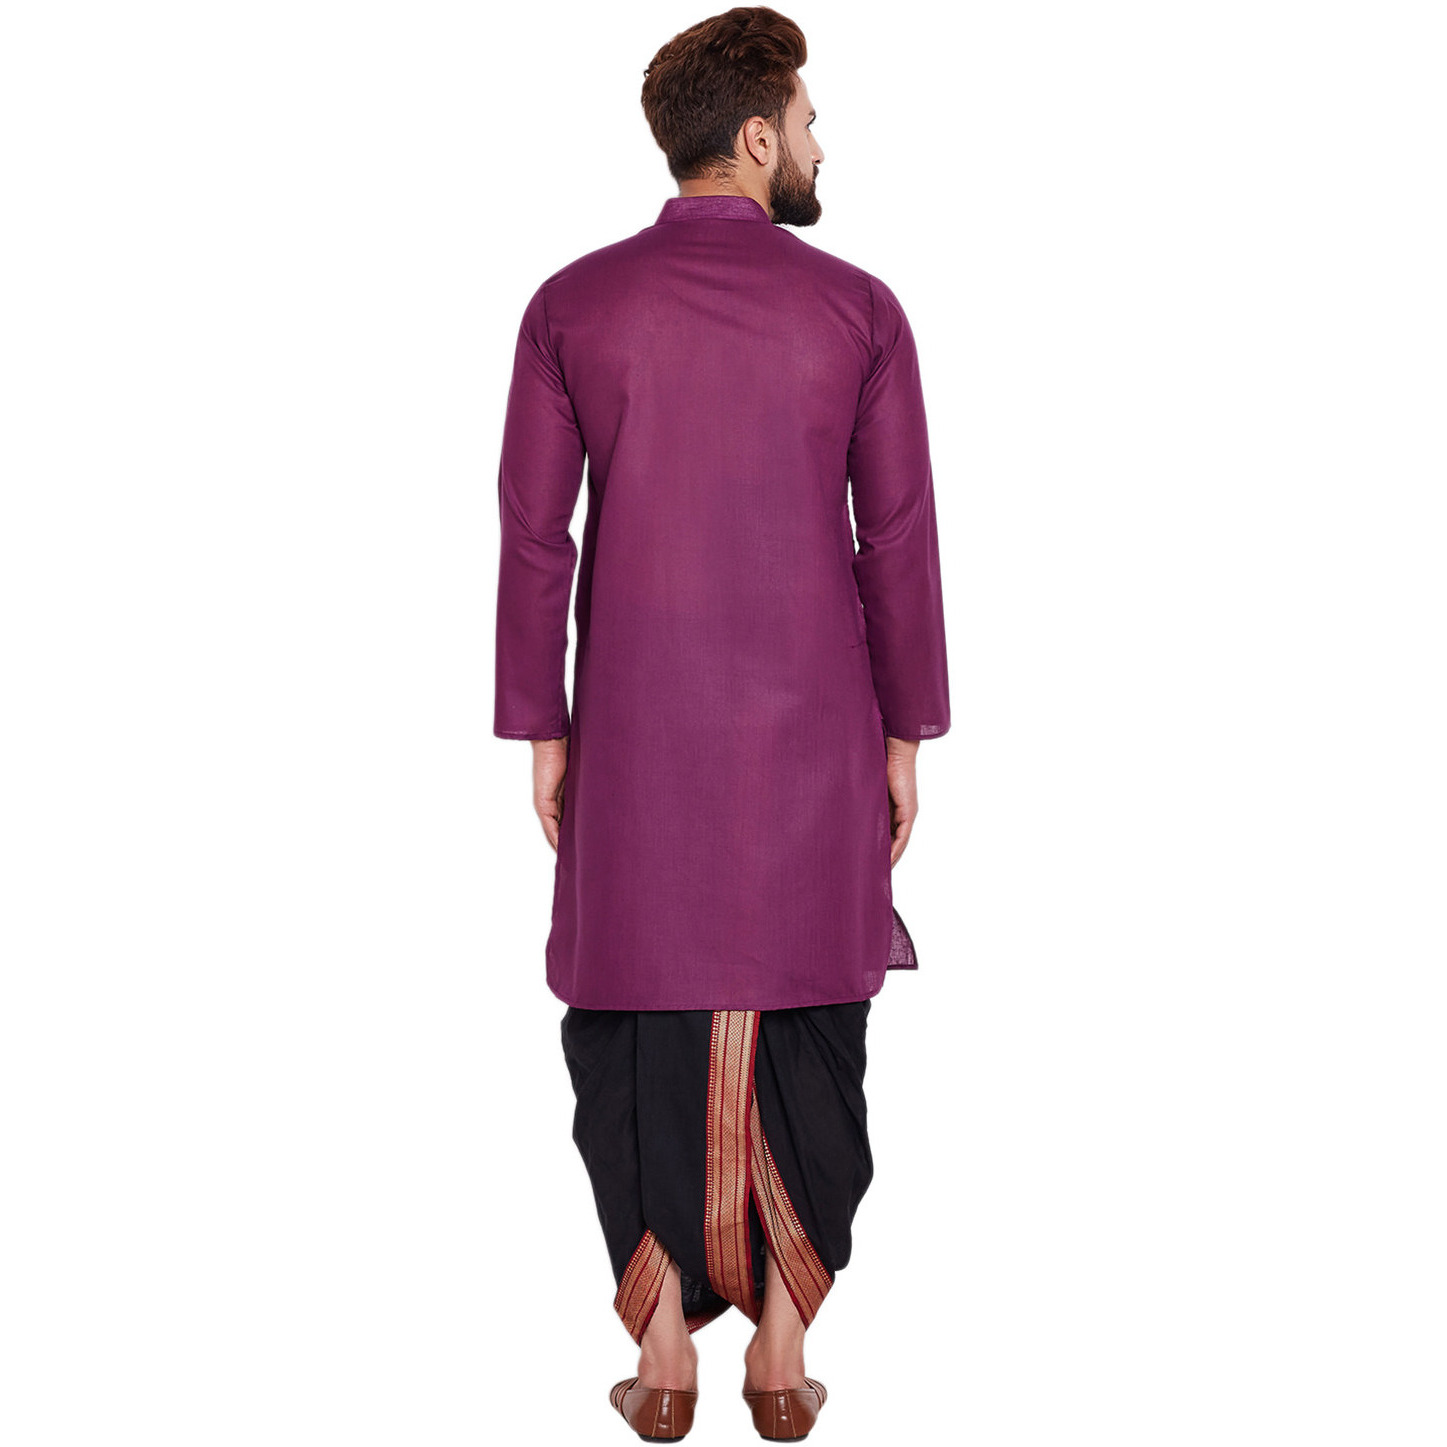 Sojanya (Since 1958)B Men's Traditional Ethnic Wear Cotton Purple and Black Plain DhotiKurta Set Regular Fit